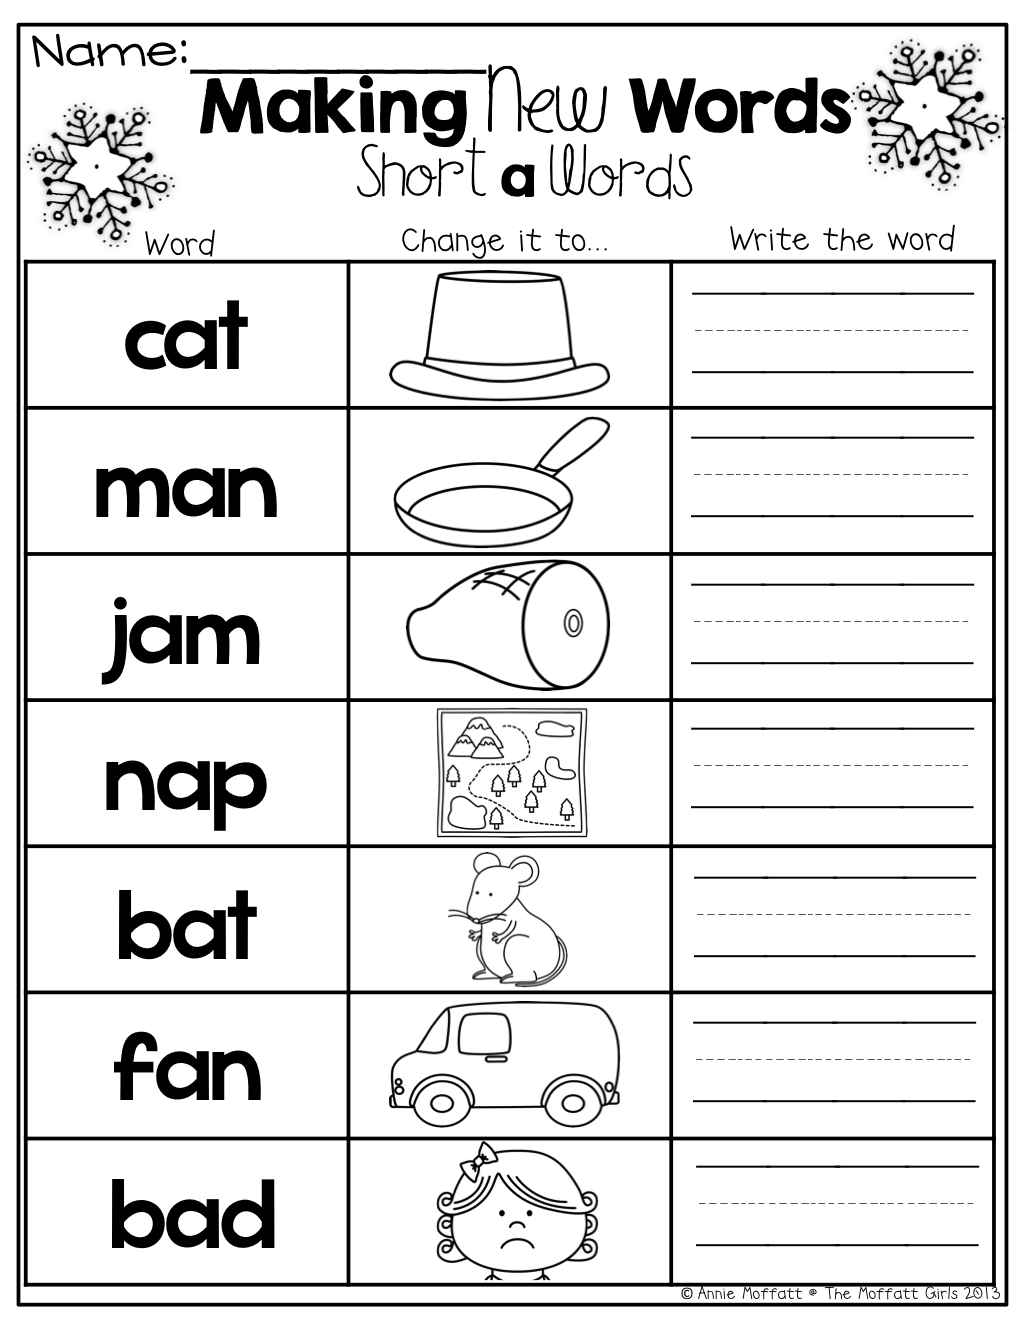 worksheet Beginning Sounds Worksheets Cut And Paste make new words by changing the beginning sound skool dayz sound